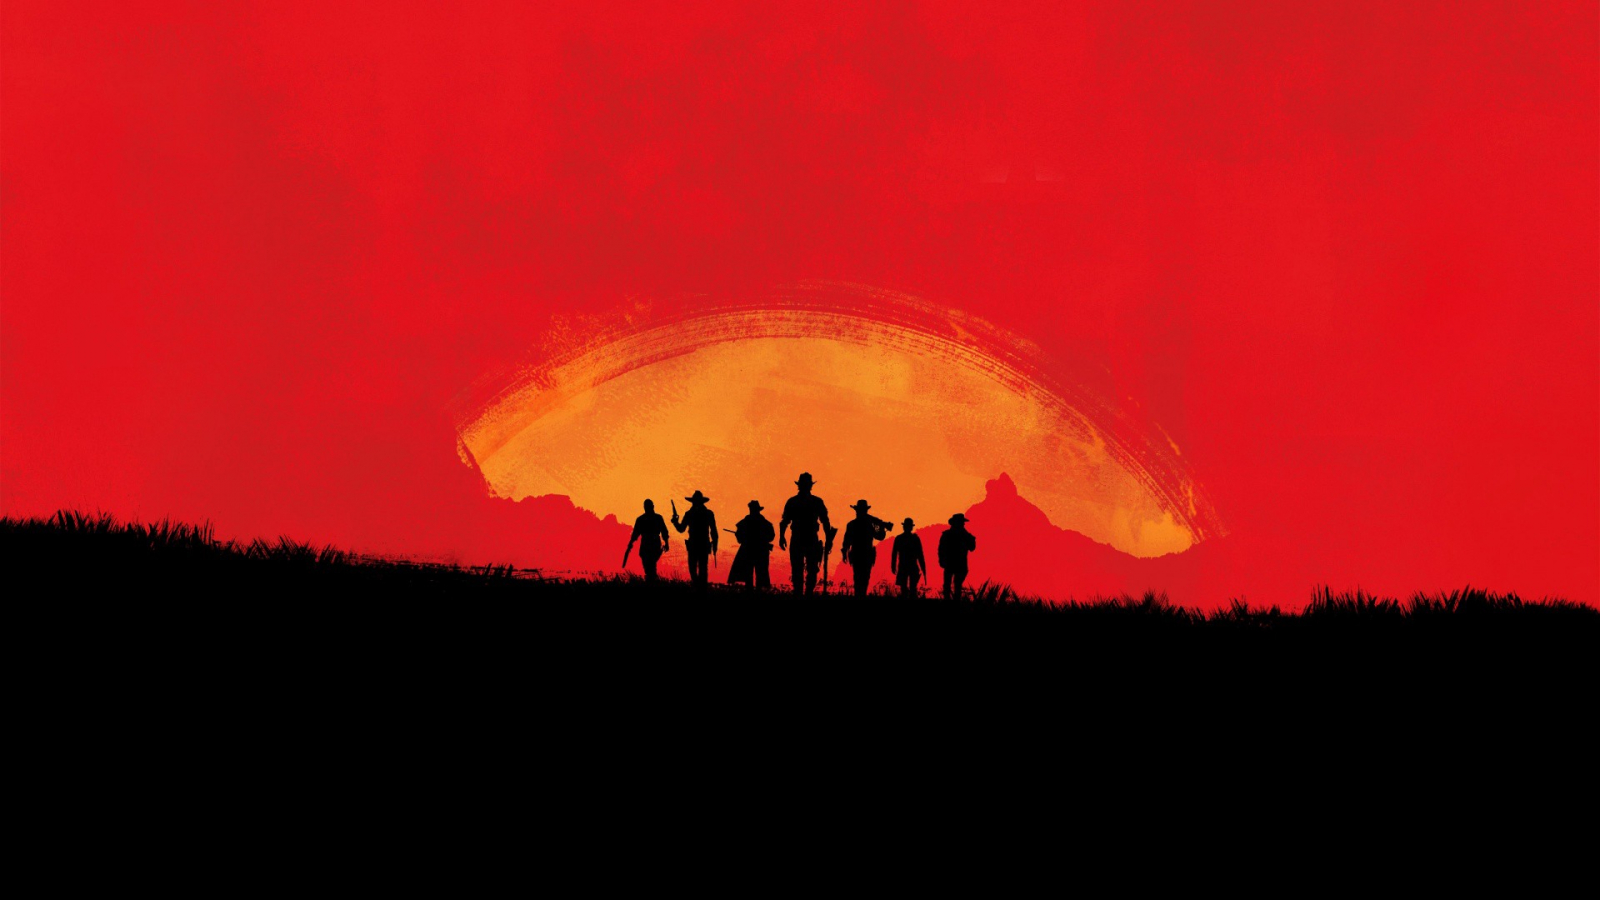 Free Download 2017 Red Dead Redemption 2 1080p Hd Wallpapers